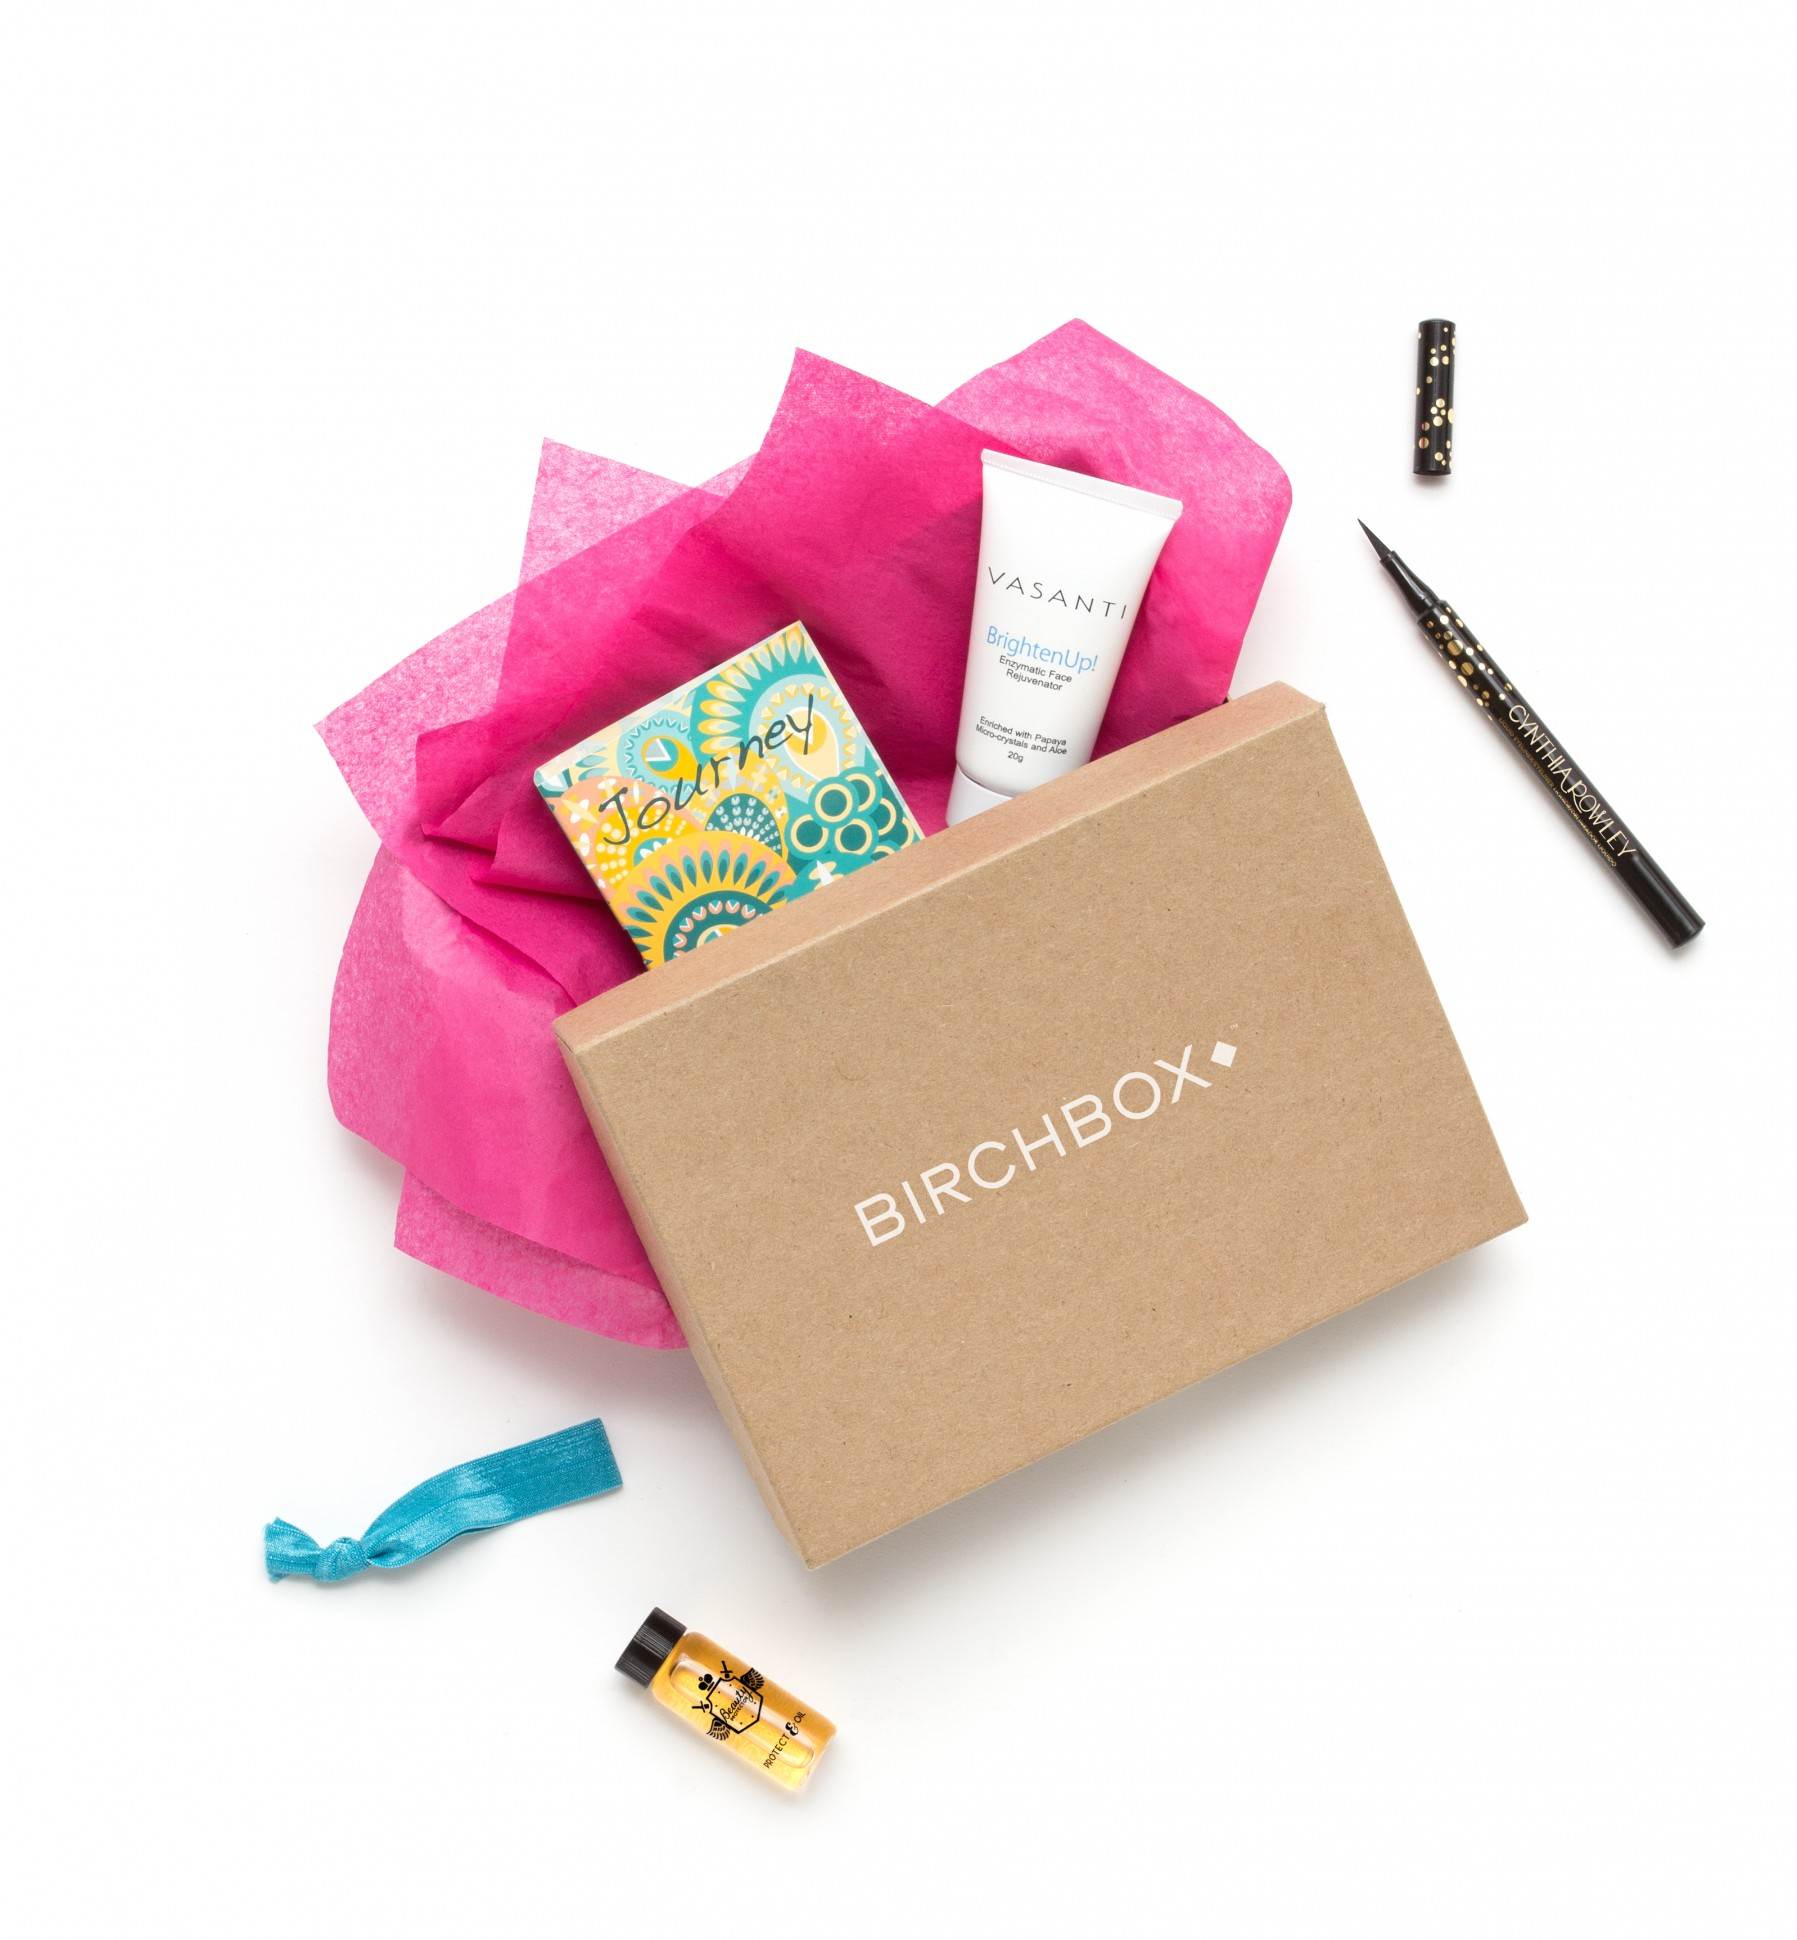 da8f6b11852 Consumer Marketing Done Right: The Story Of Birchbox